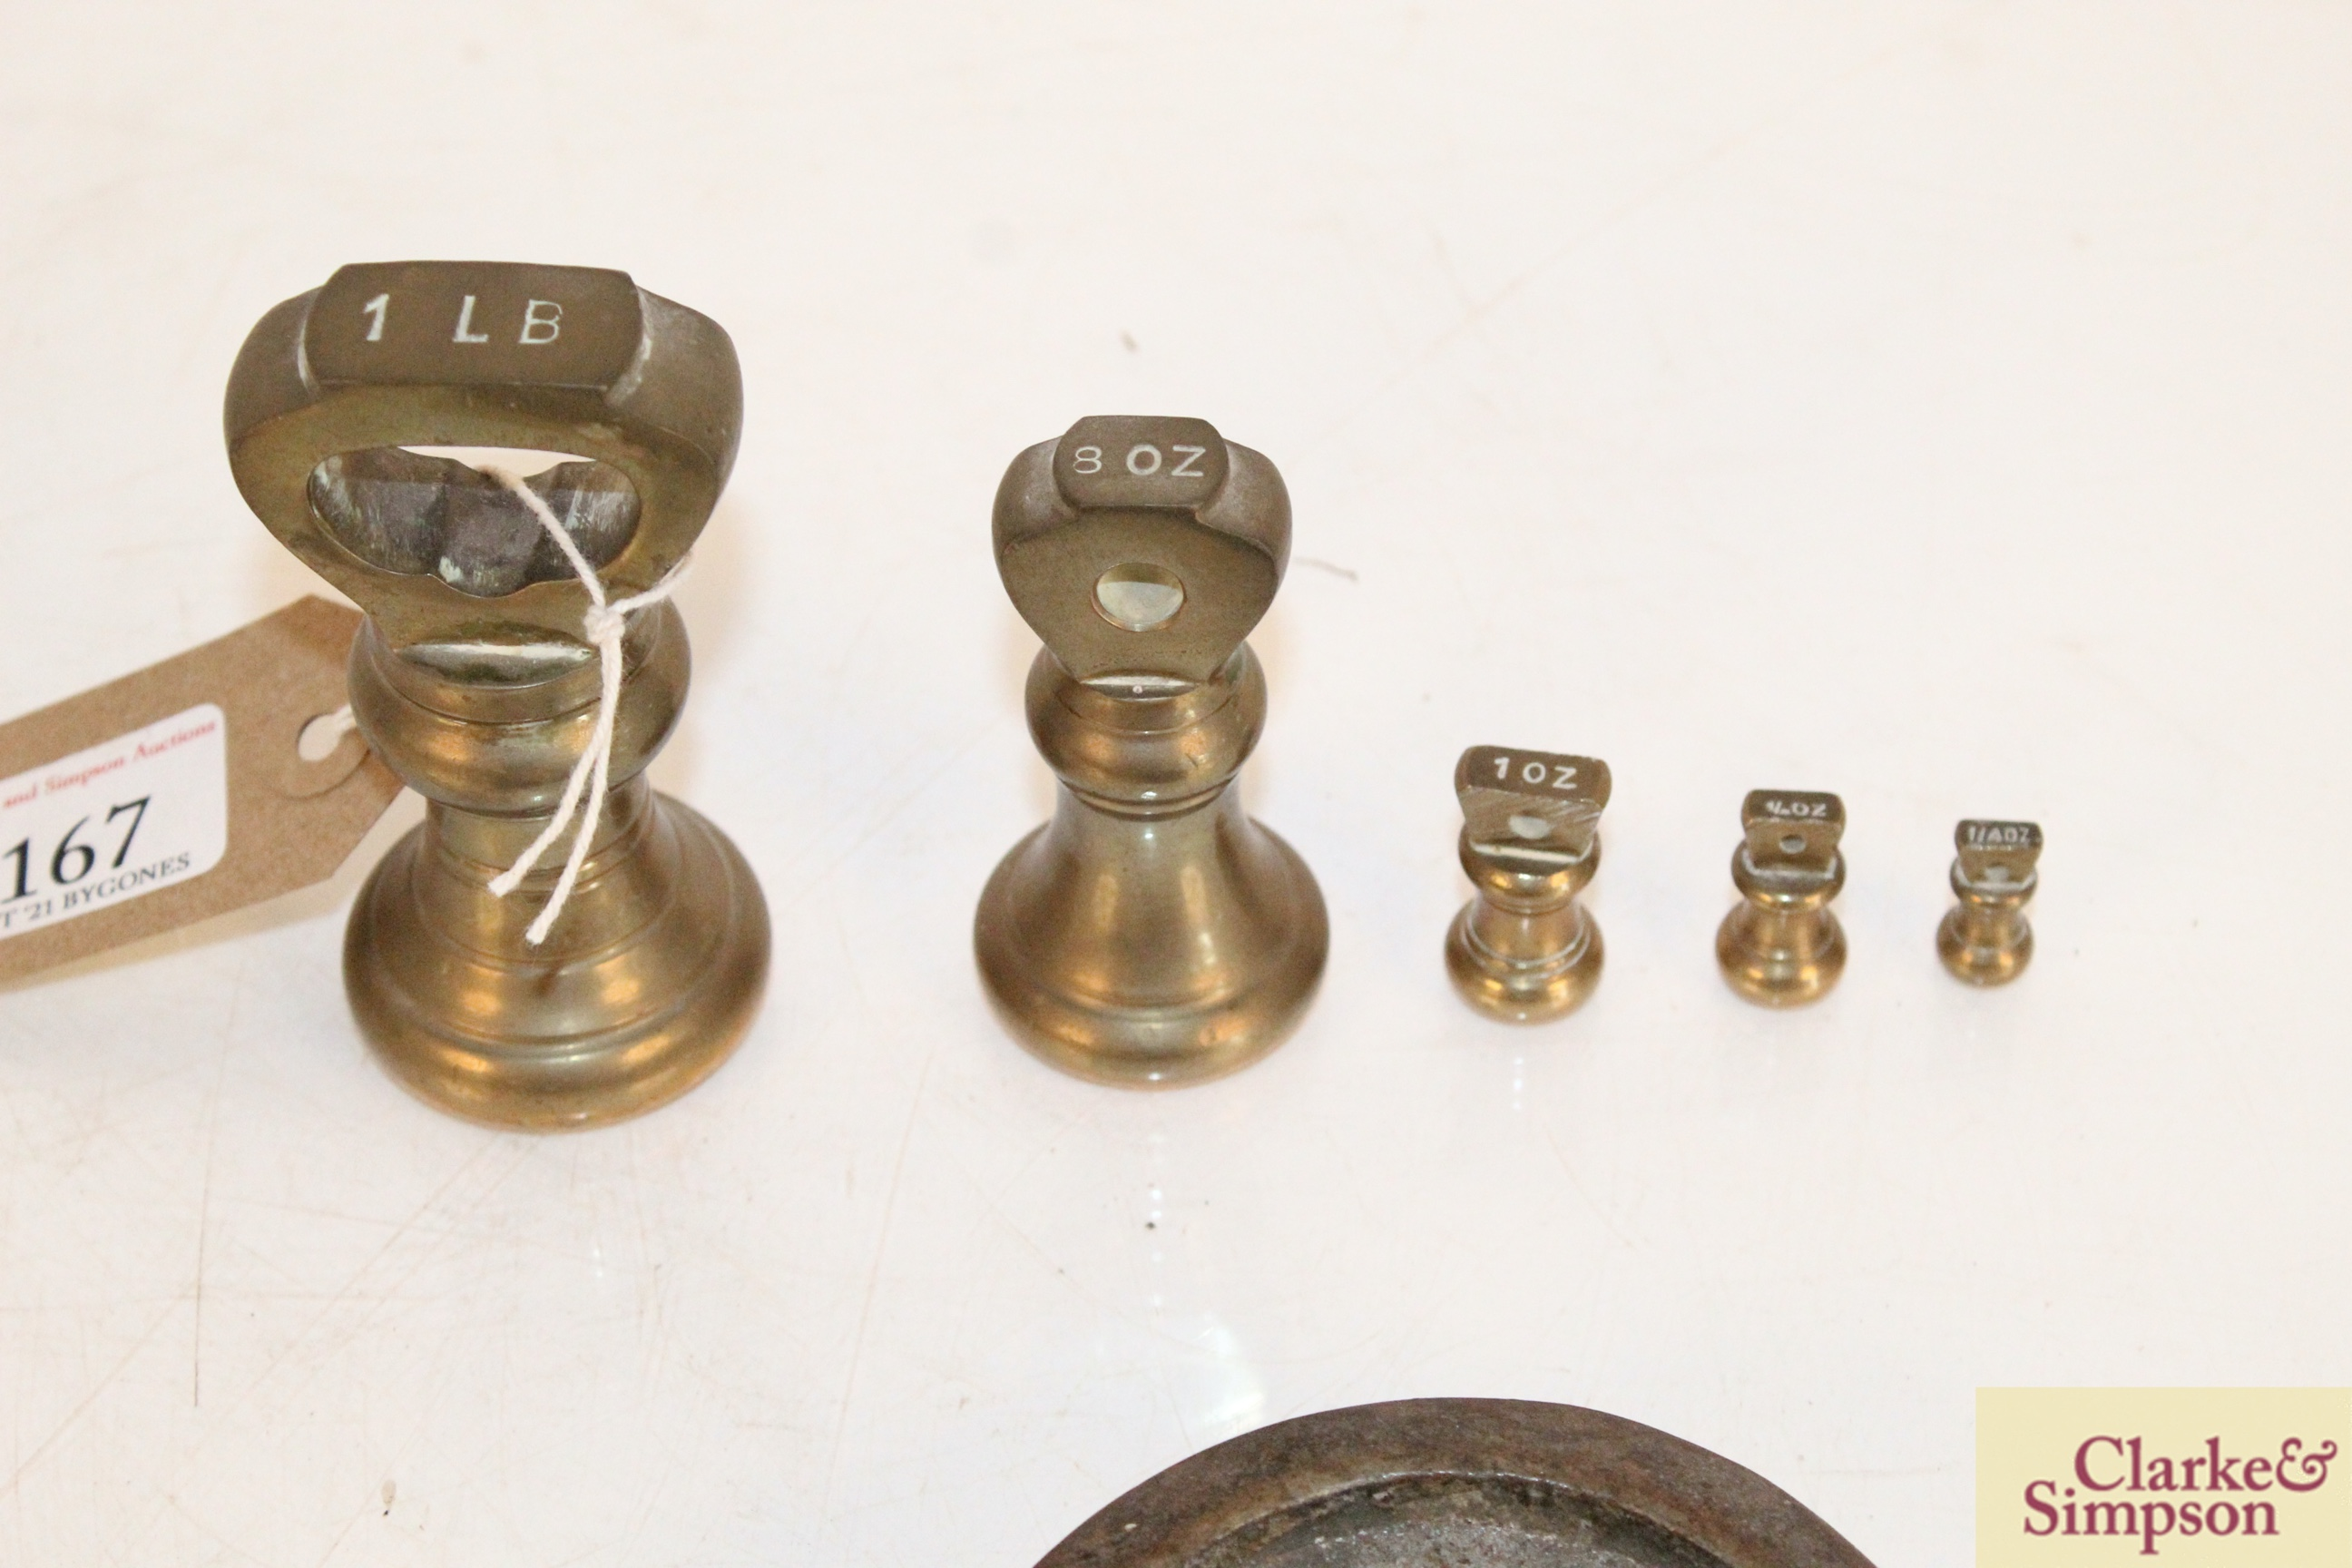 A set of brass graduated weights from 1lb to ¼oz, - Image 3 of 3